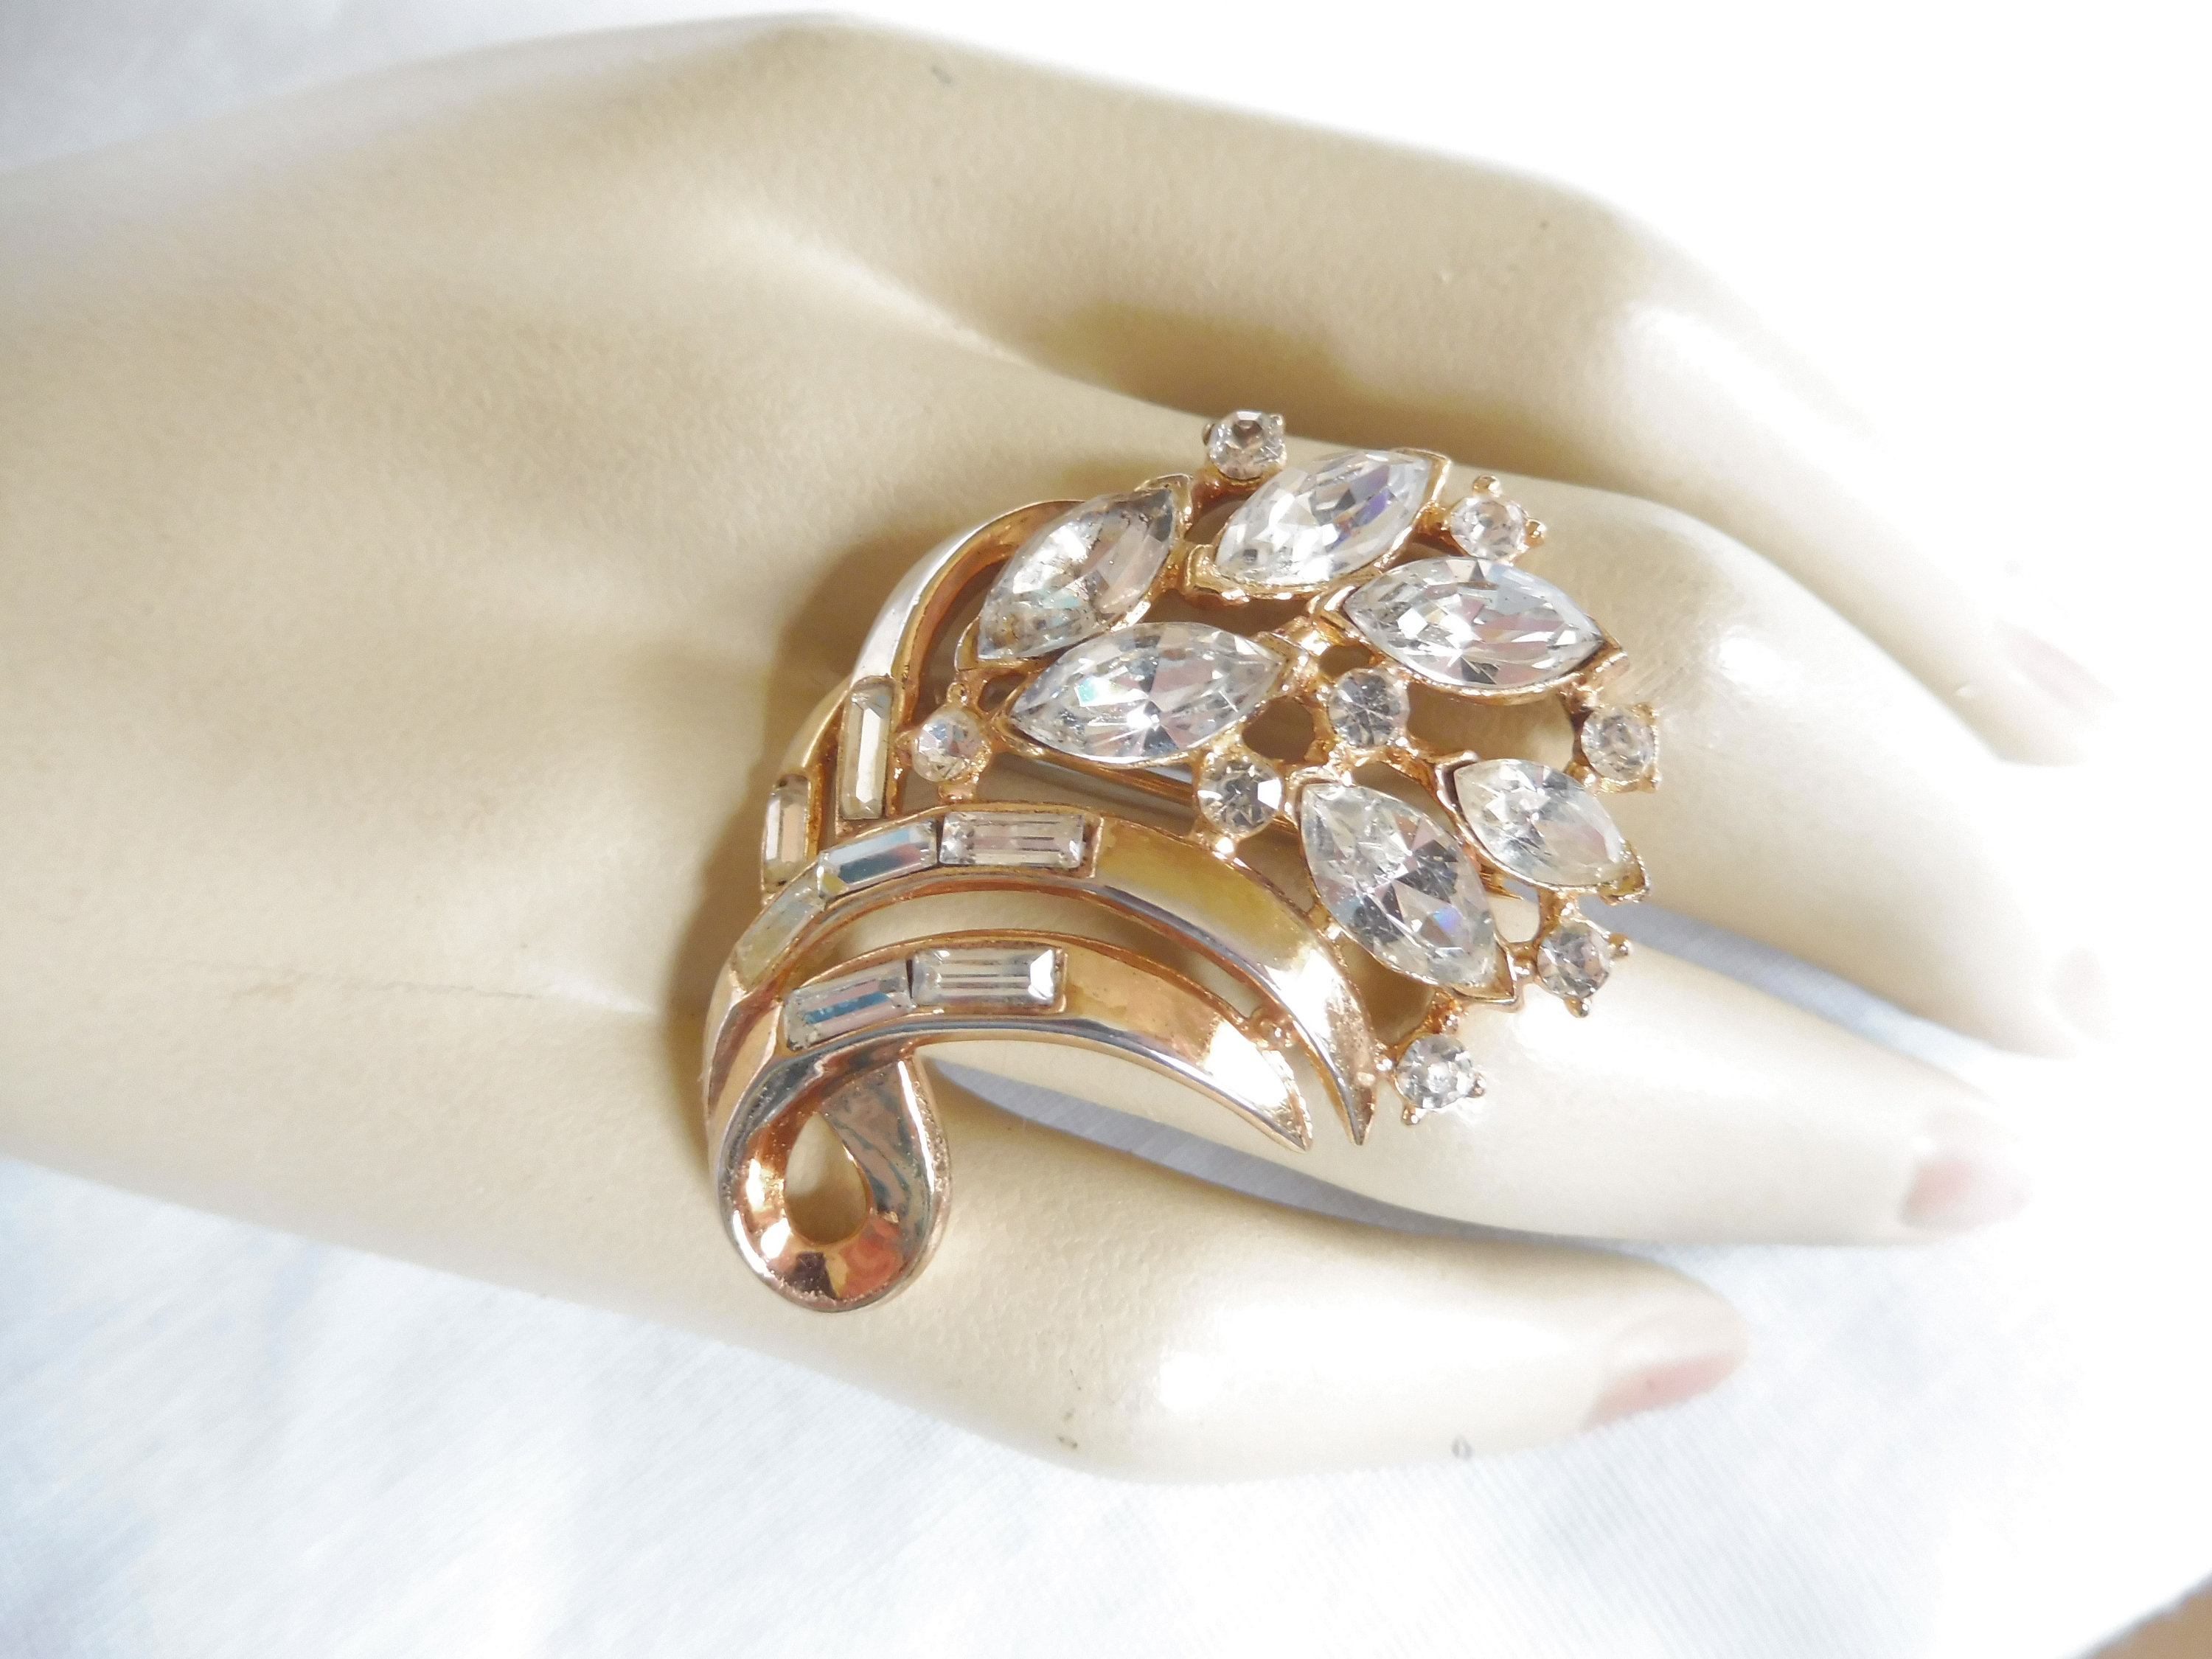 Vintage Crown Trifari Sparkling Clear Marquise Rhinestone Spray Brooch Pin Intended For 2018 Clear Sparkling Crown Rings (View 16 of 25)